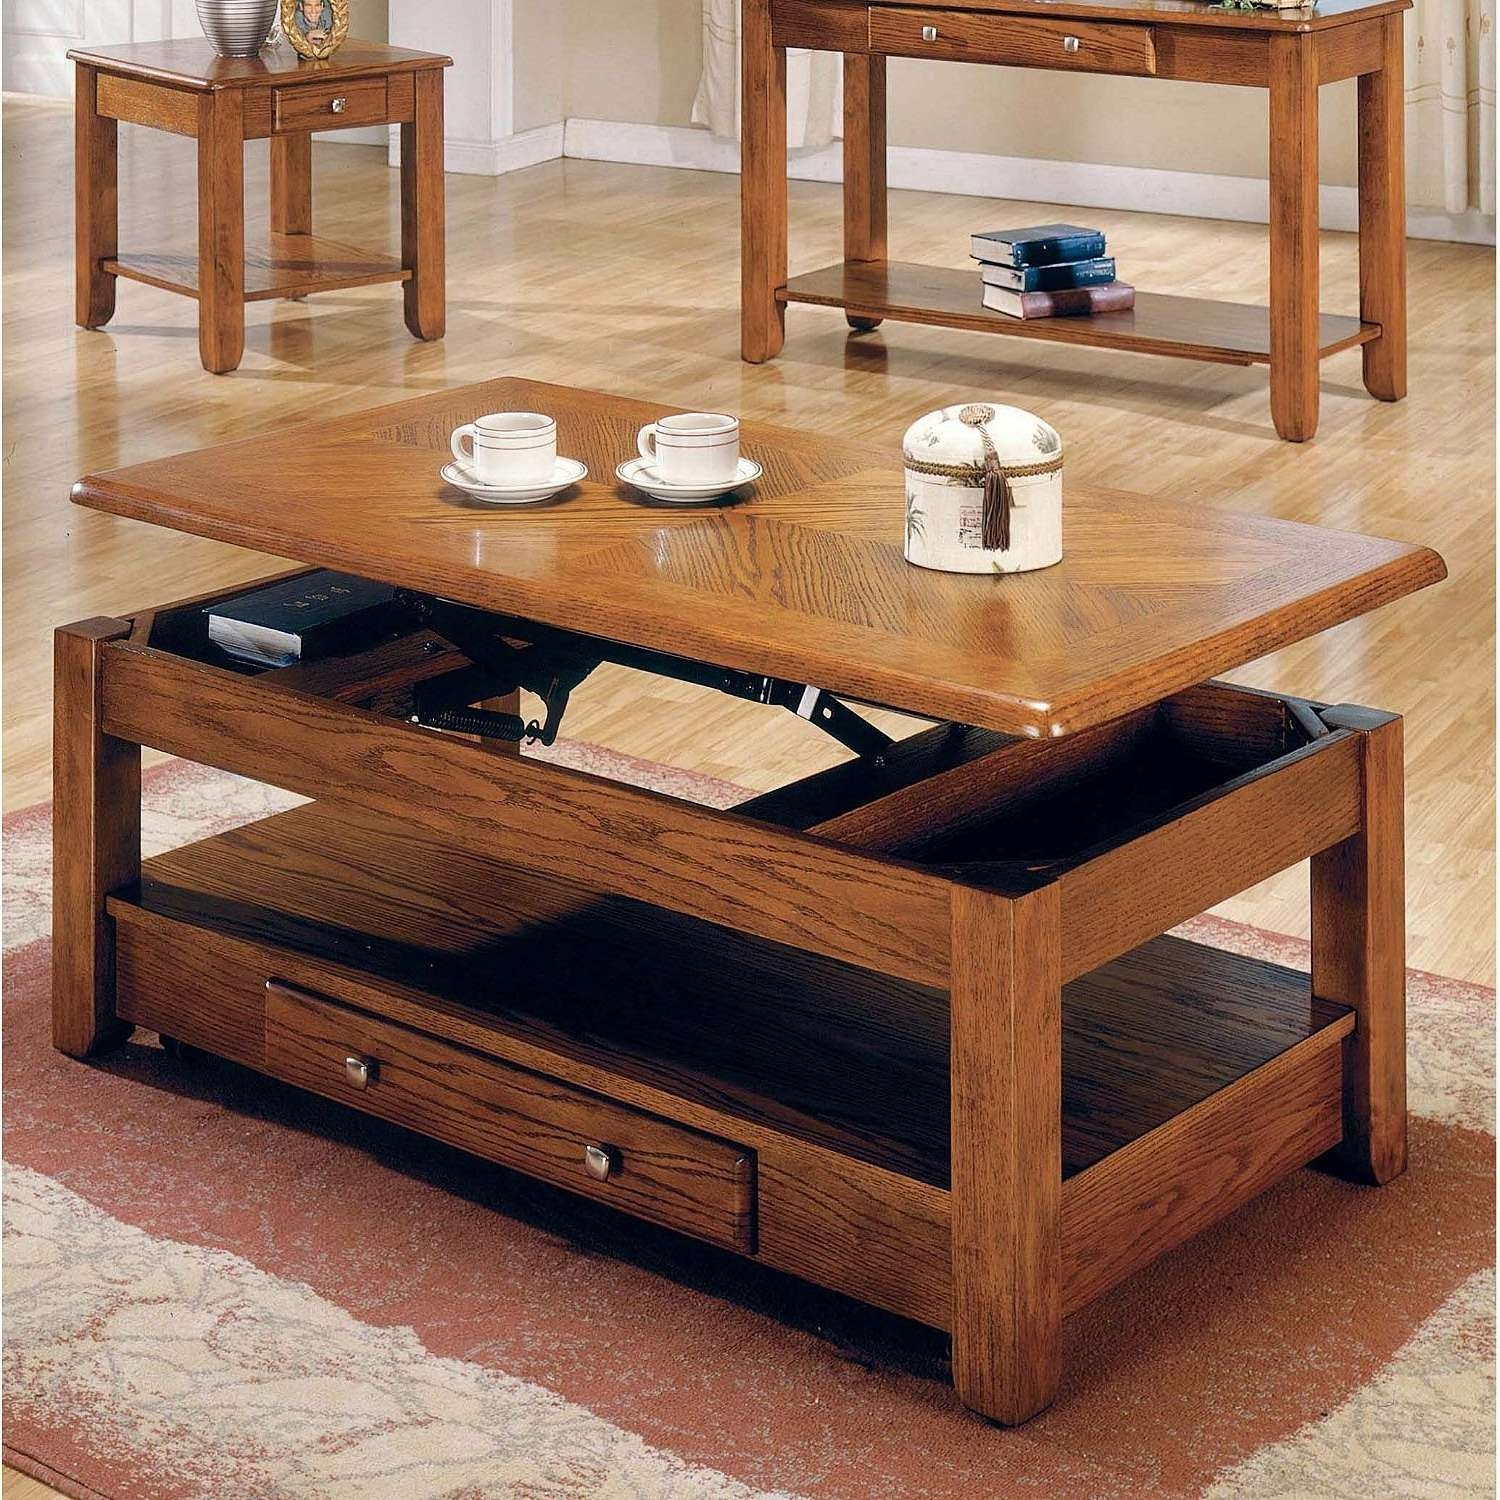 Popular Dining Coffee Tables In Coffee Table : Amazing Cool Coffee Tables Oak Coffee Table (View 5 of 20)